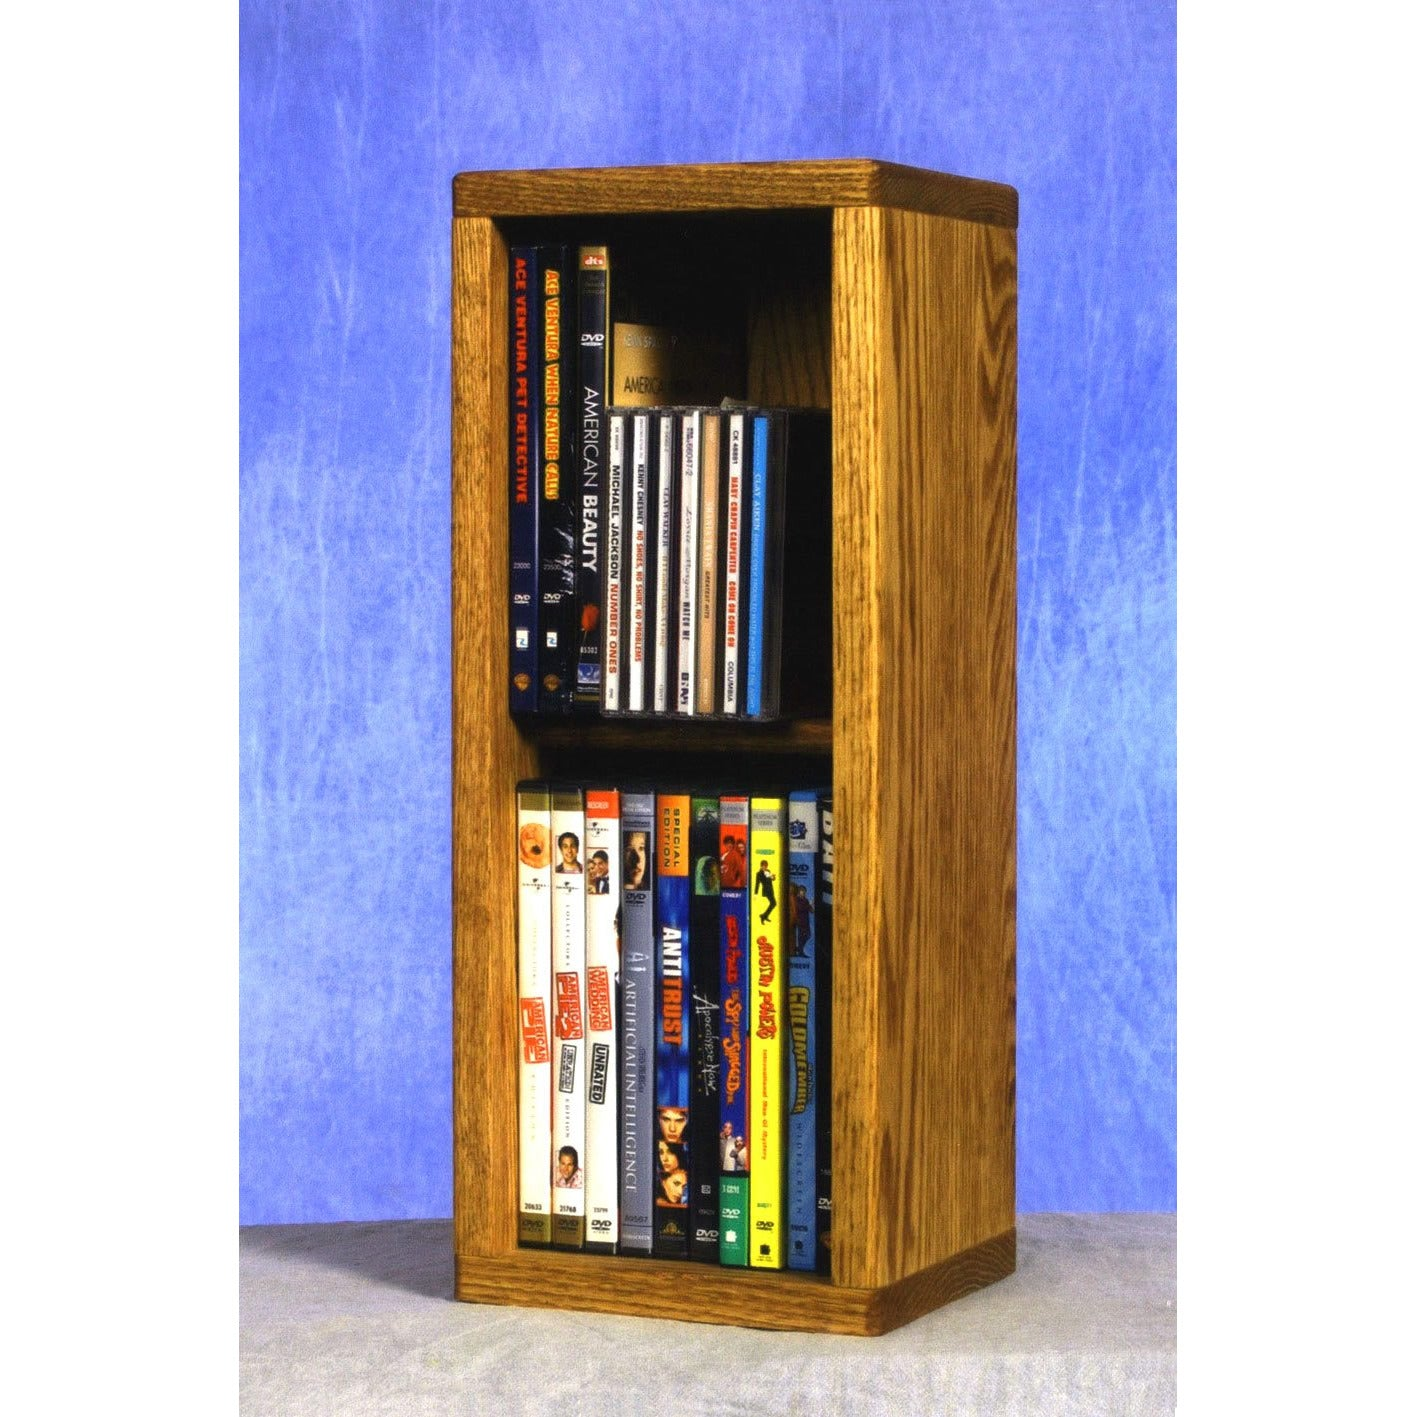 15 Series CD/DVD/VHS Combination Cabinets - dowel shelves - 12 sizes